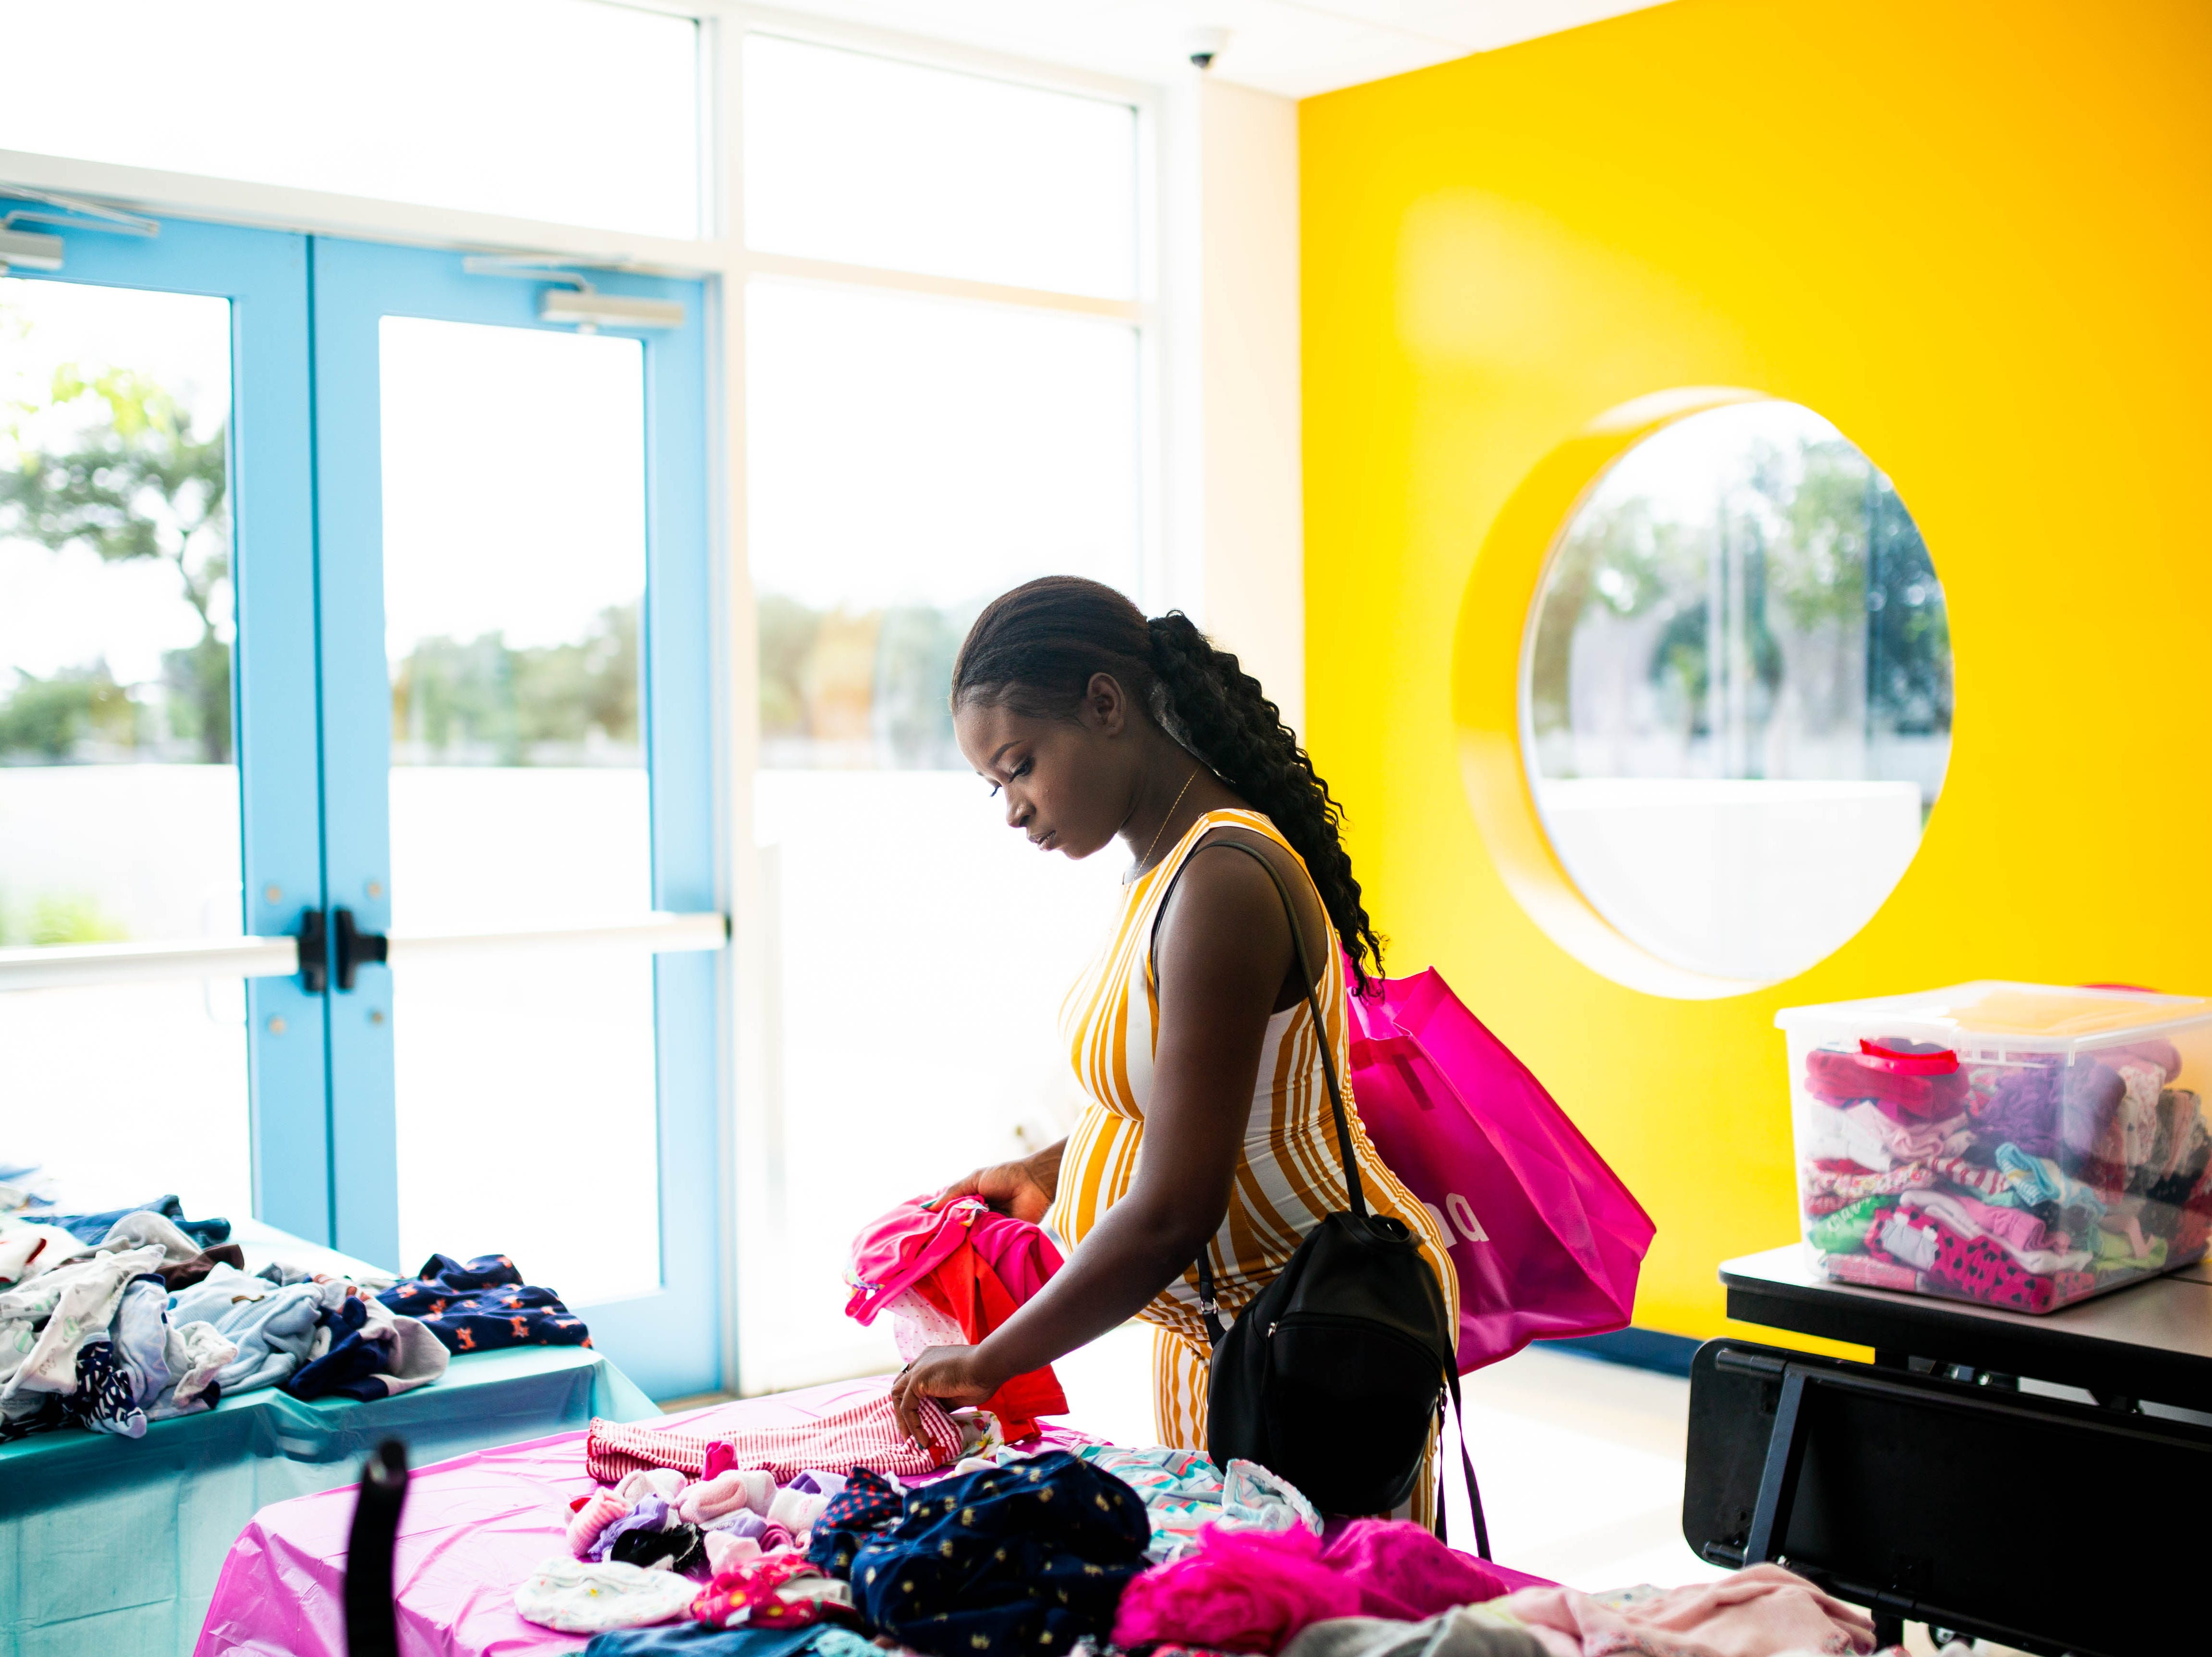 Marie O. Jean browses through a bin of donated baby clothing at the Immokalee Community Baby Shower at the Boys & Girls Club in Immokalee on Thursday, May 9, 2019. Theodore, an employee of the Boys & Girls Club, is due in July.